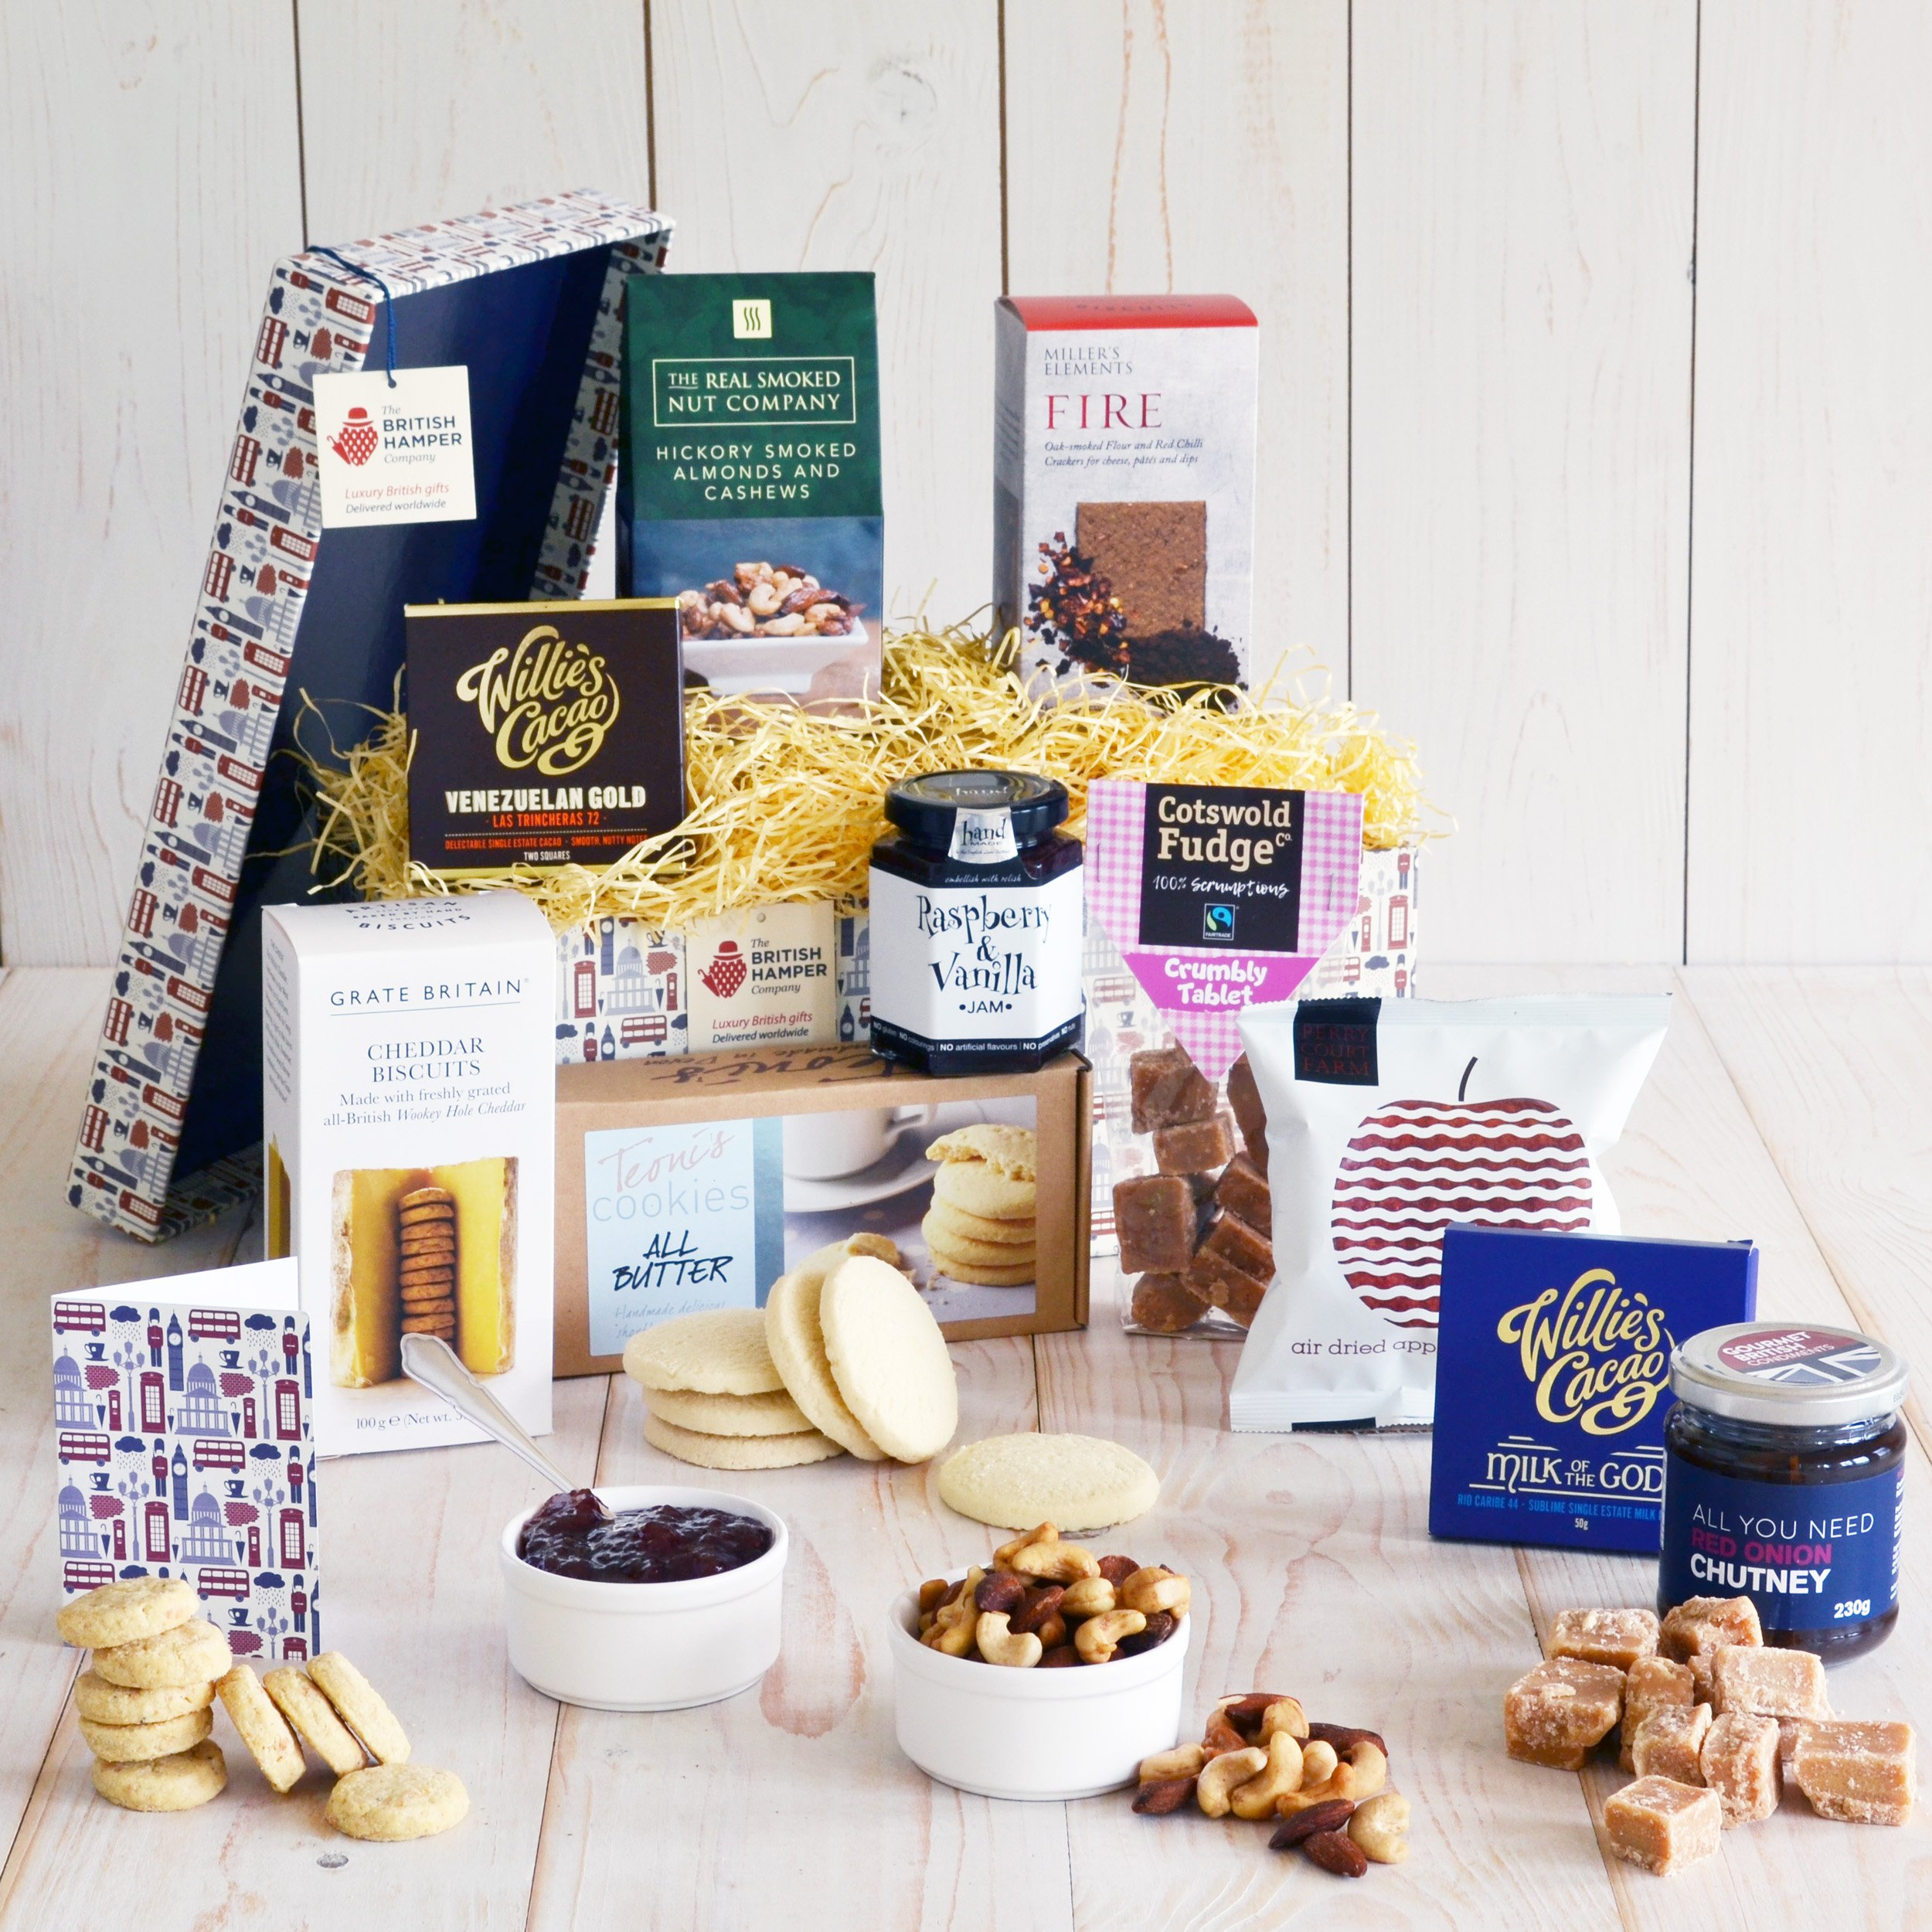 Superior Traditional British Gift Basket - Gift Card Included - British Artisan Food Gift Basket by The British Hamper Company